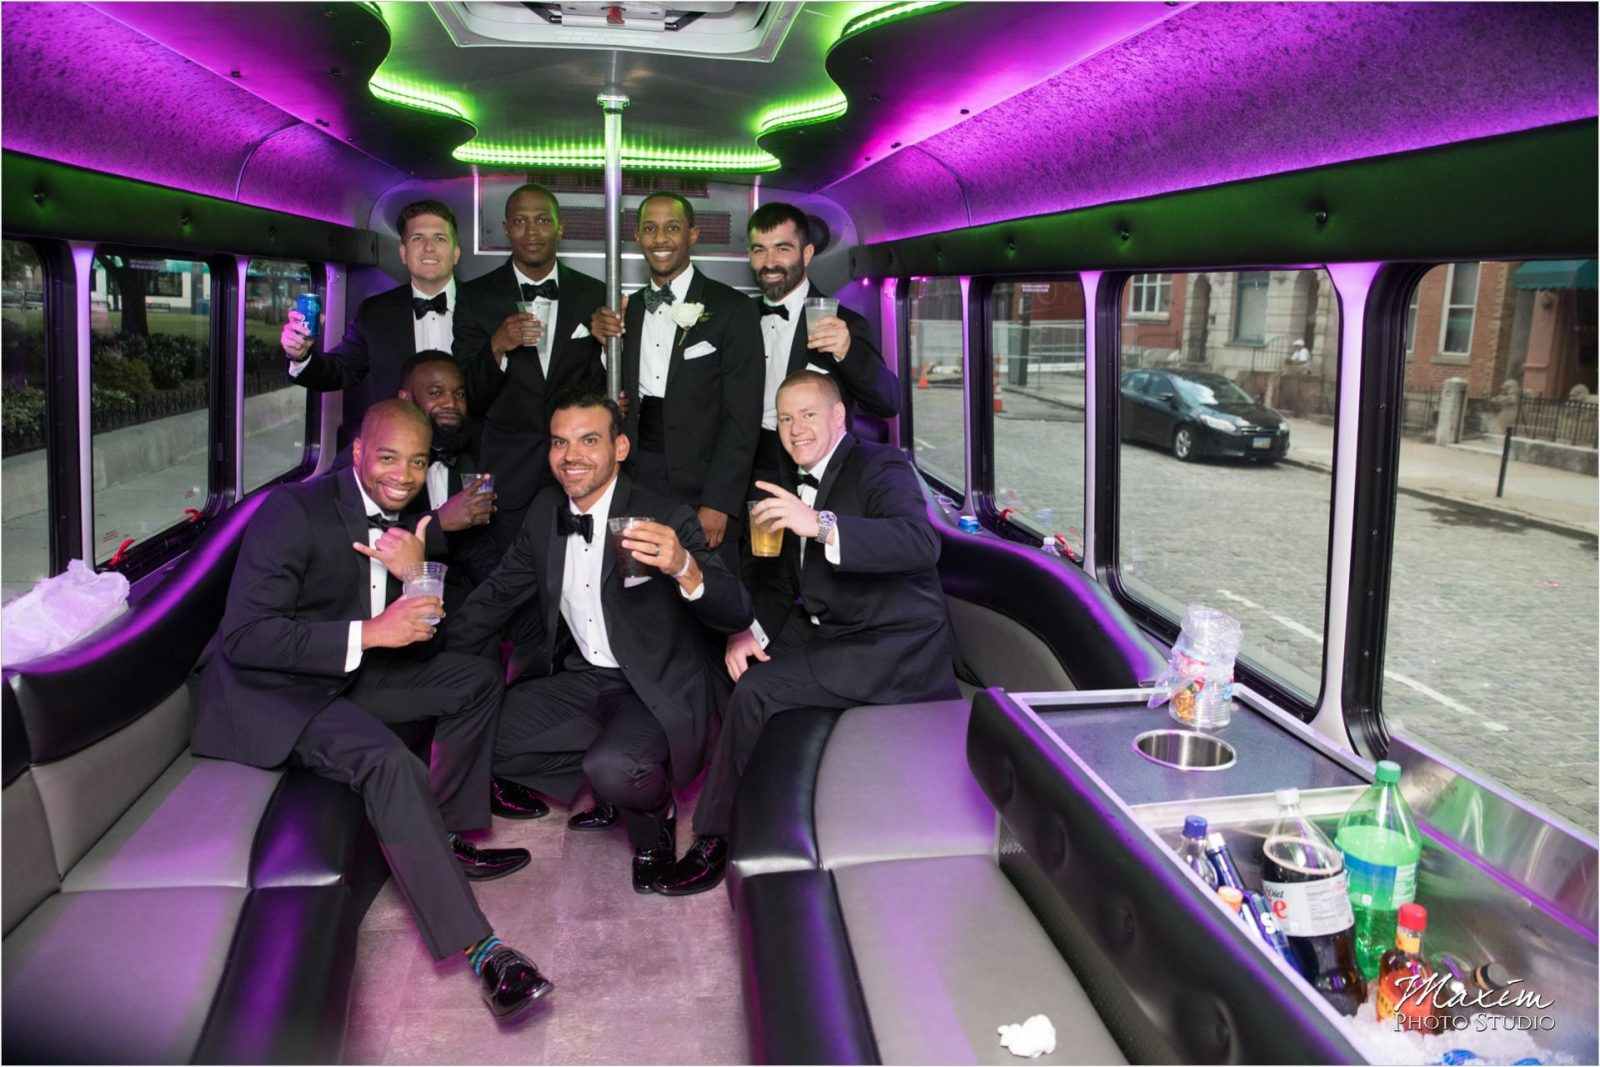 My Party Bus Groomsmen pictures